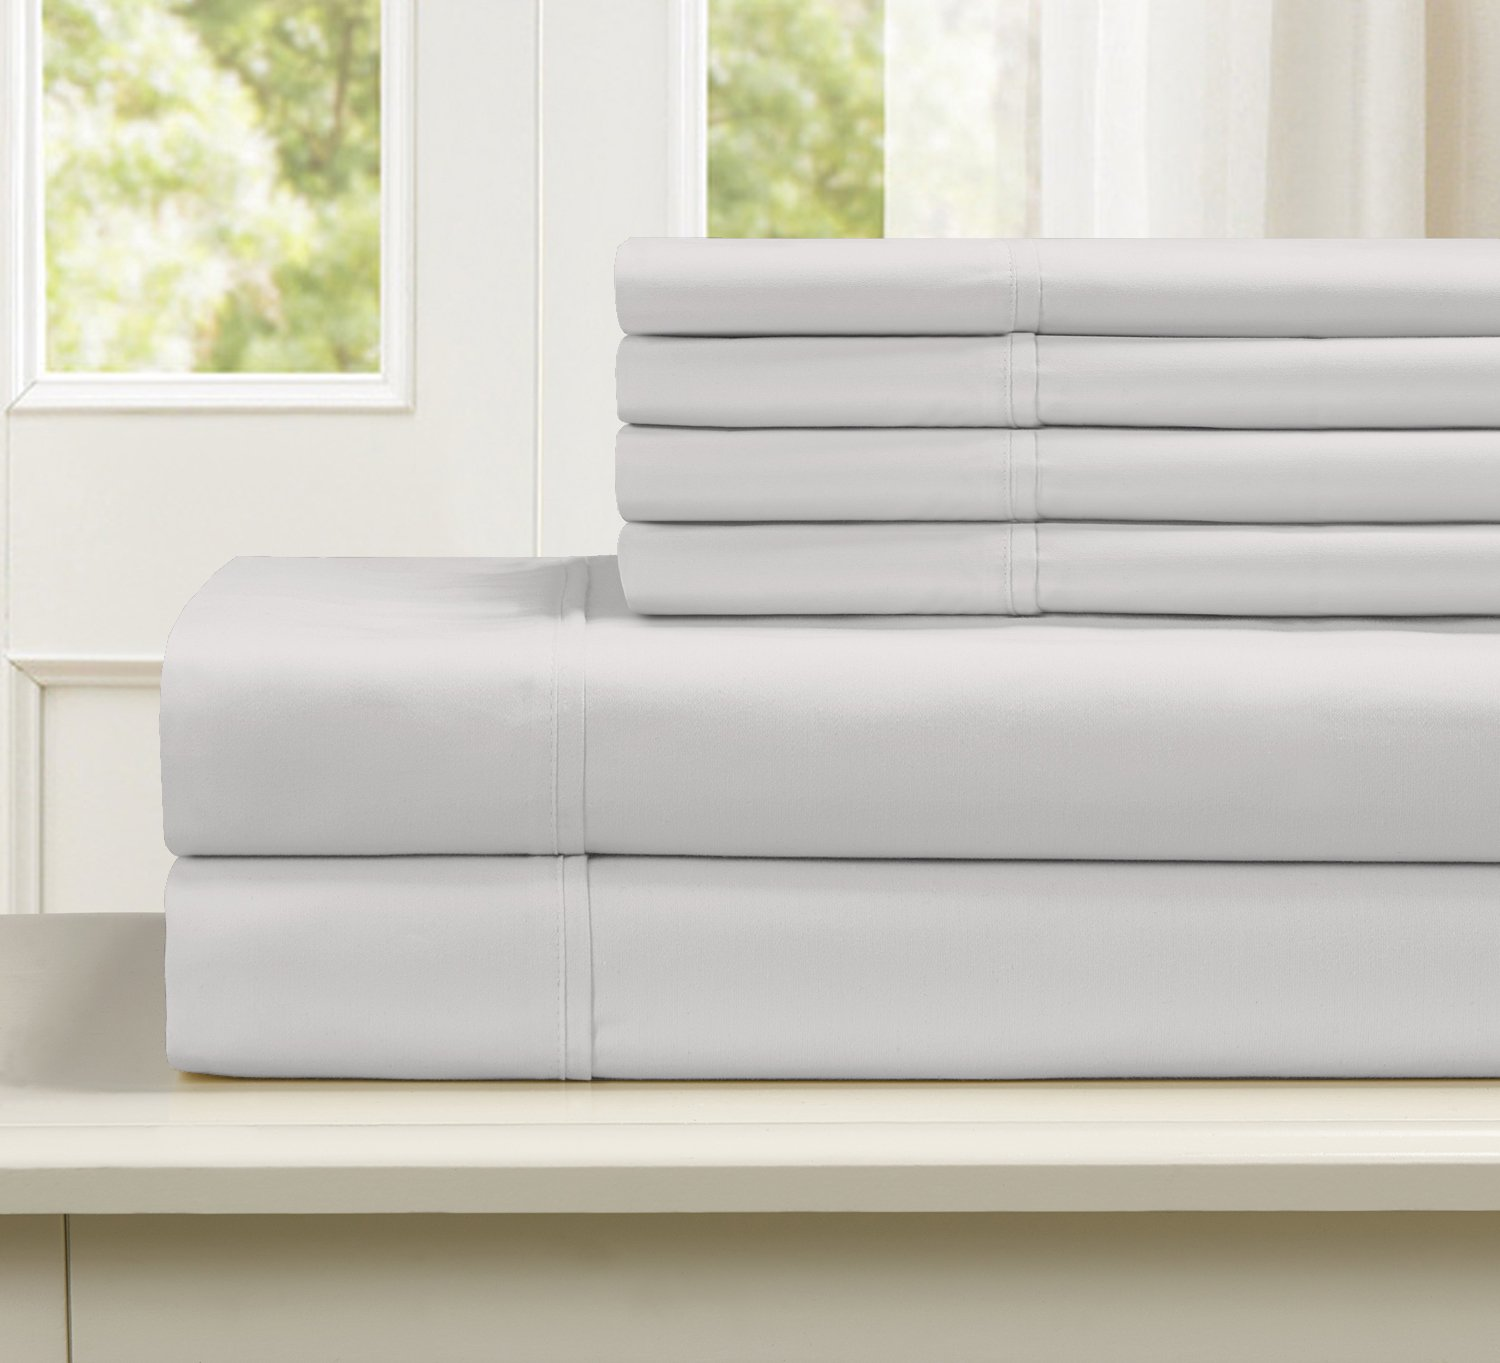 Blissful Living 800 Thread Count Cotton Rich 4-6 Piece Sheet Set - INCLUDES EXTRA PILLOWCASE(S)! Super Soft, Hotel Quality Luxury (King, Off-White)